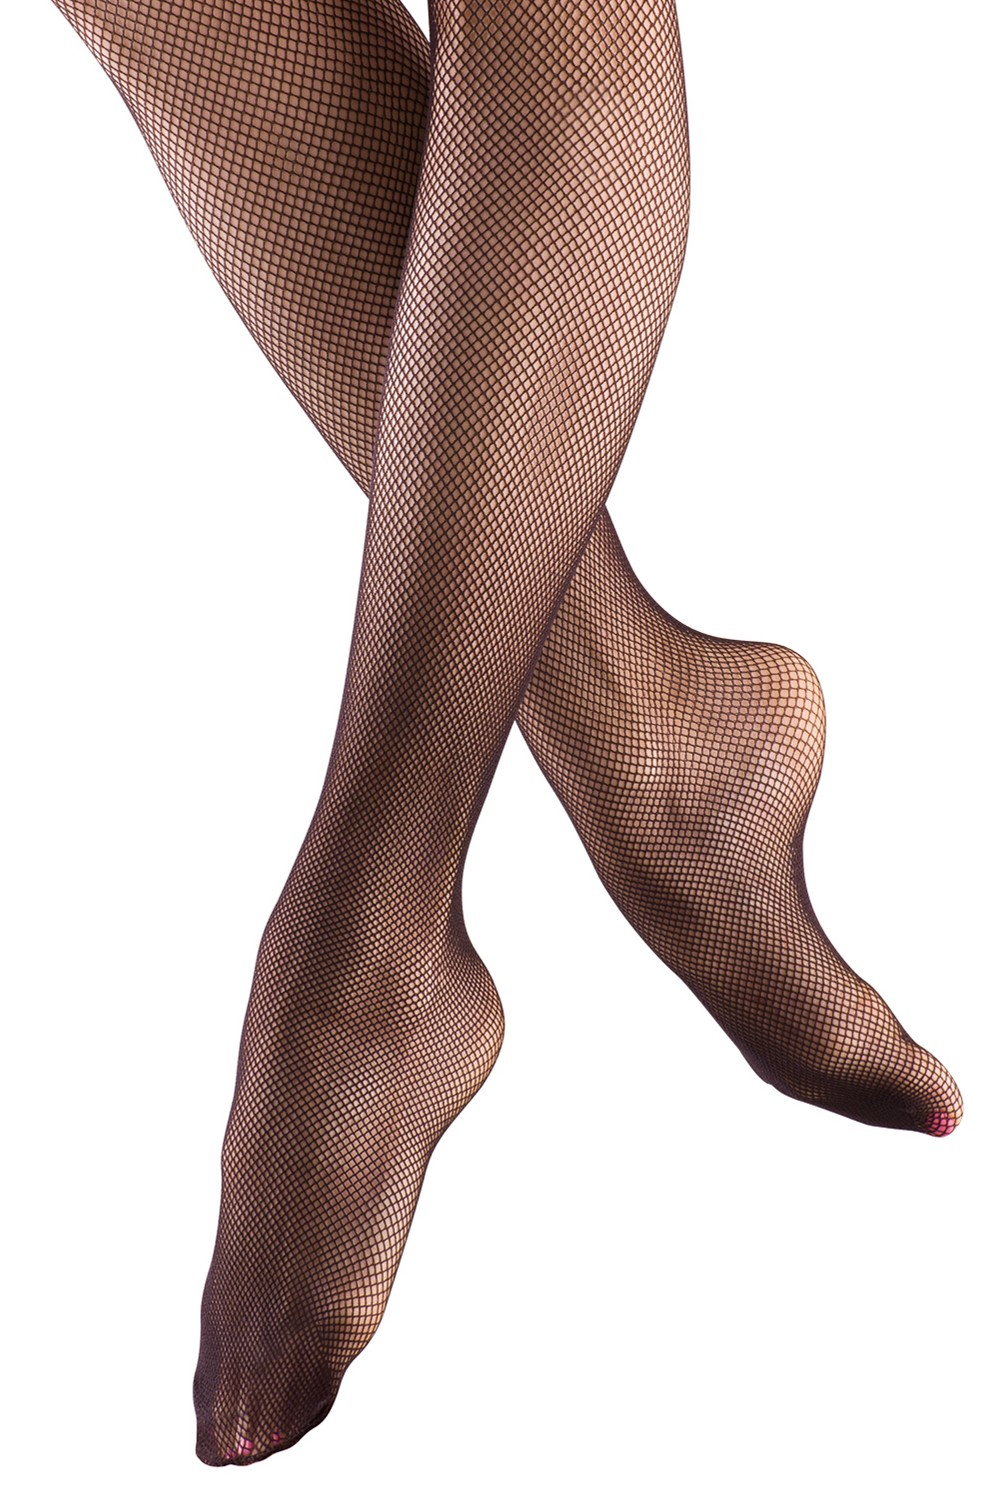 Children's Dance Tights